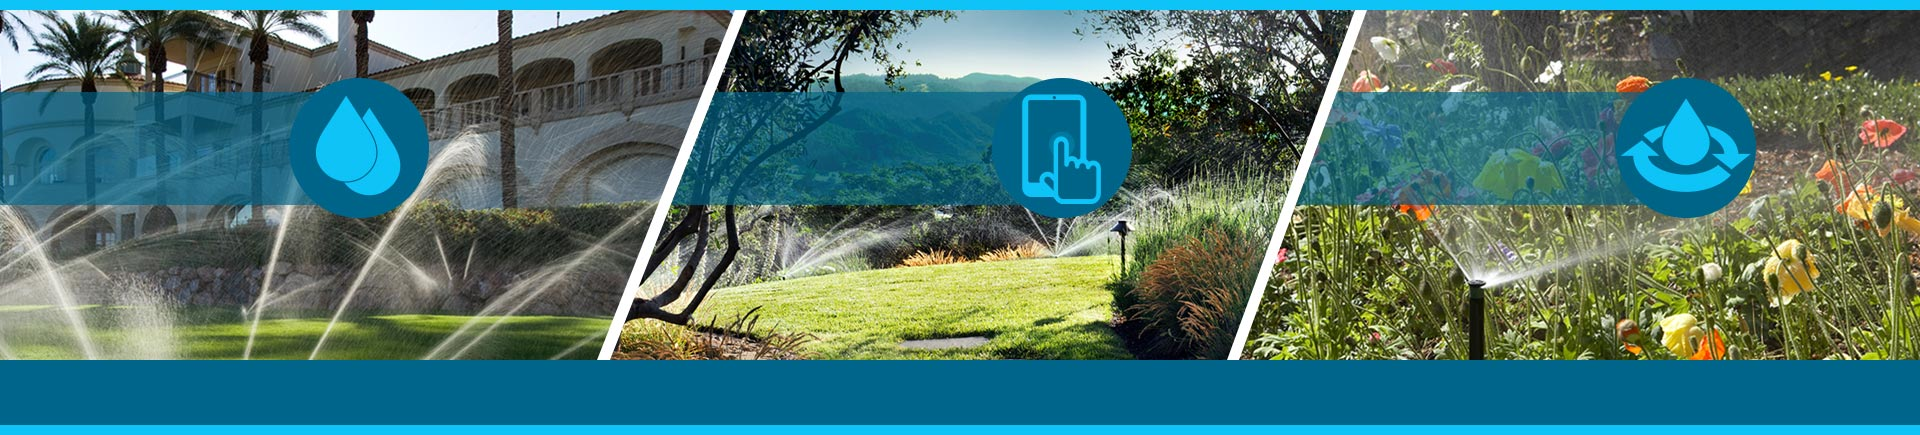 Save water, Manage remotely, and Service your customers irrigation systems online